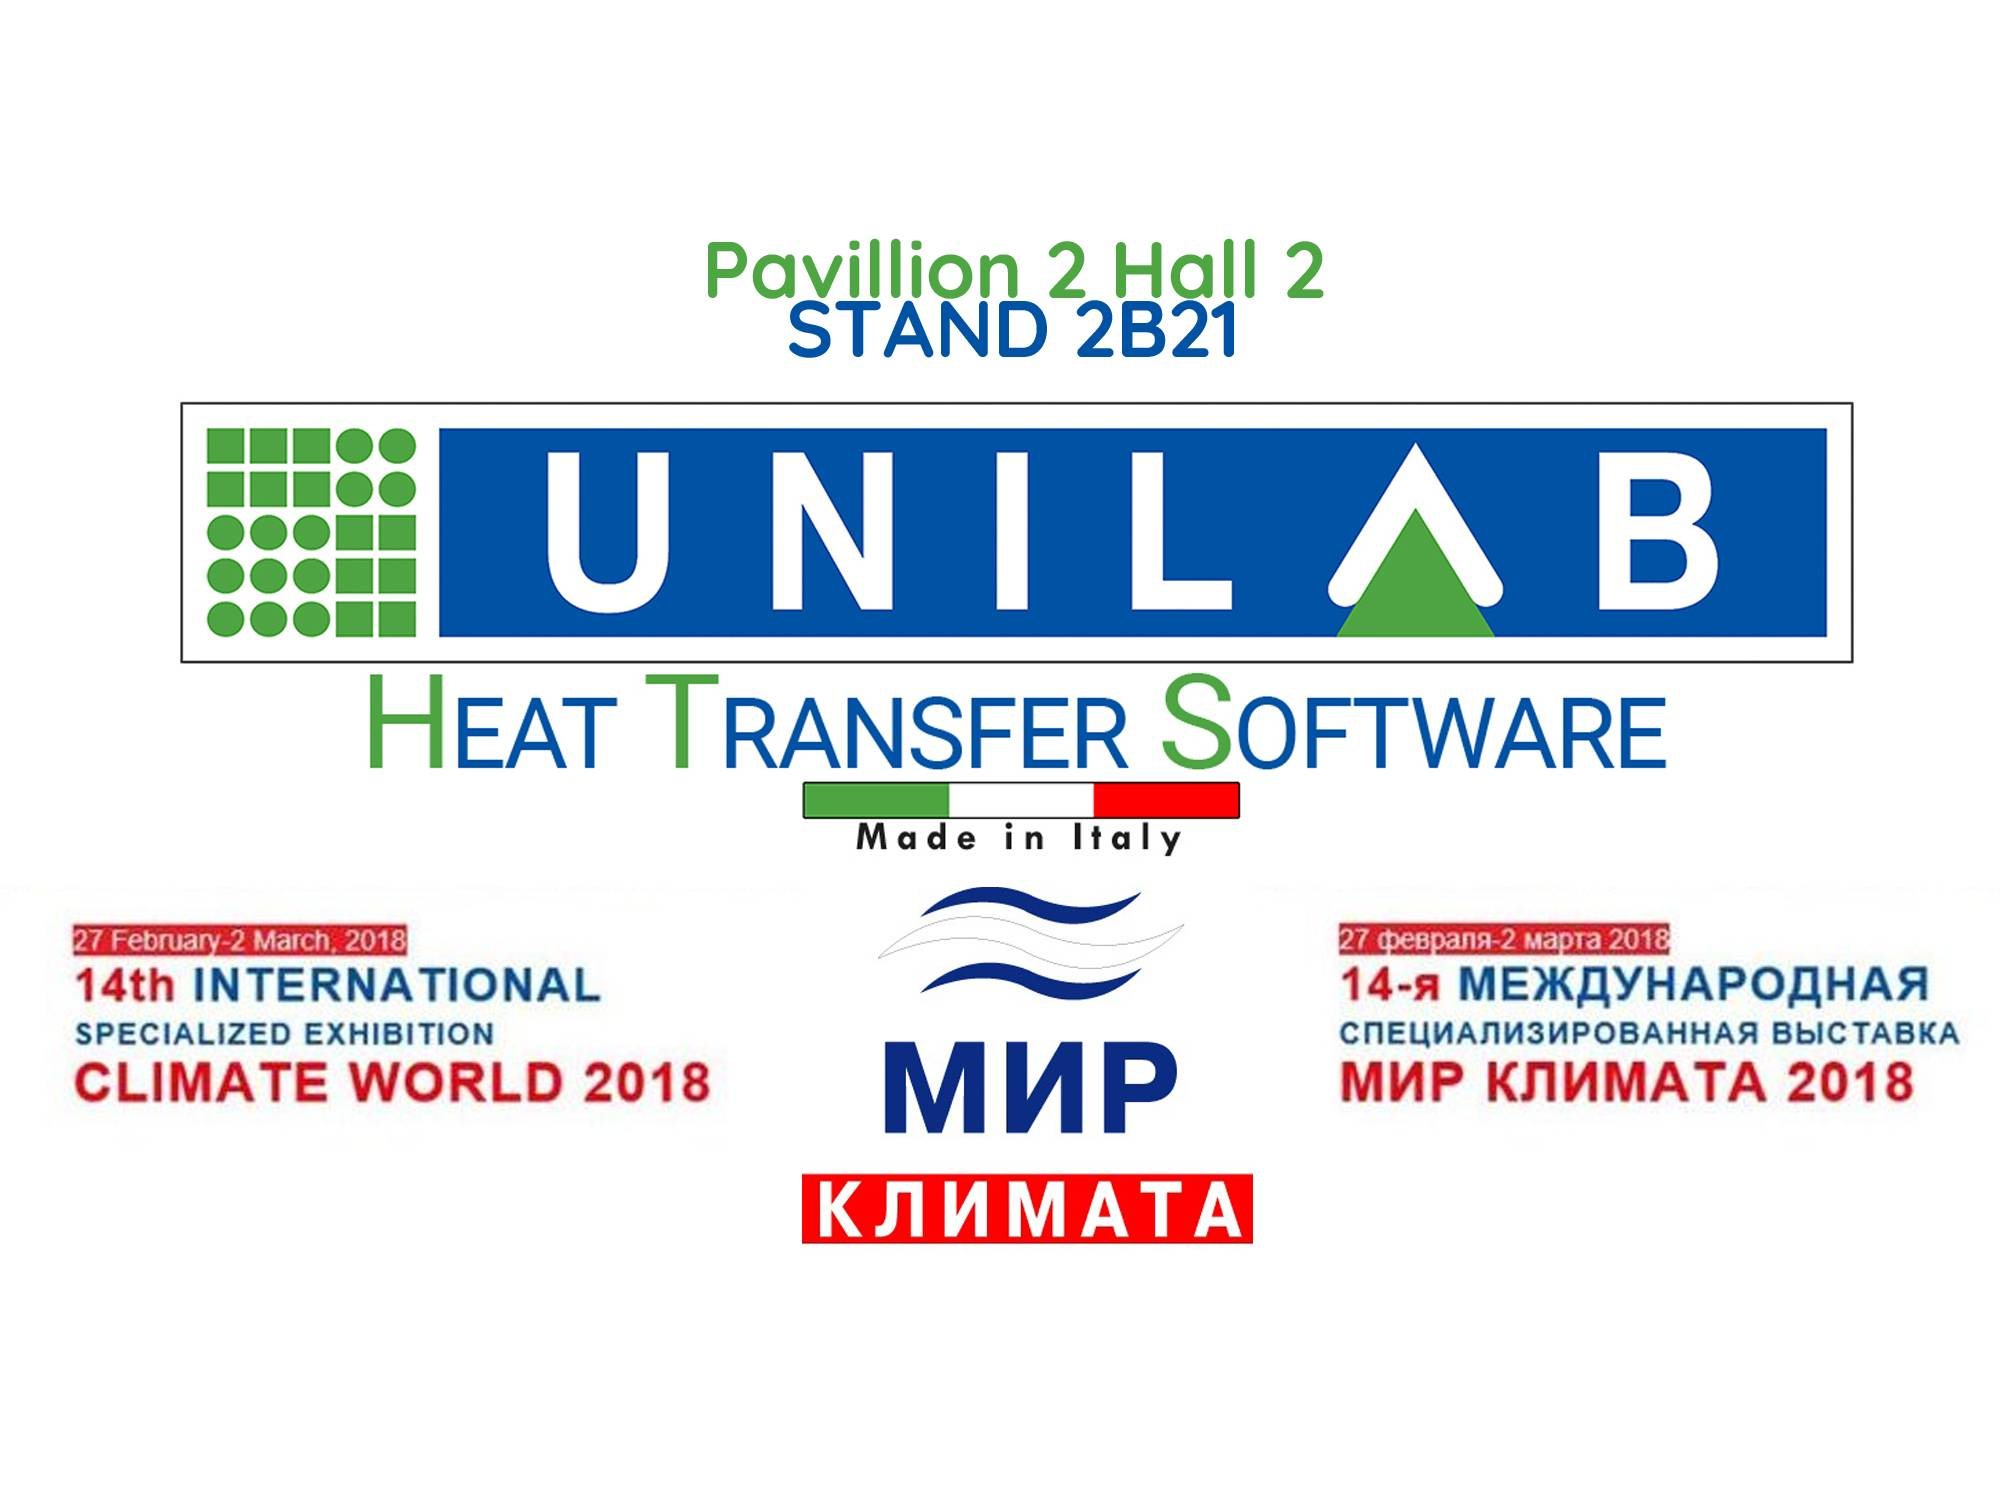 unilab heat transfer software blog climate world moscow 2018